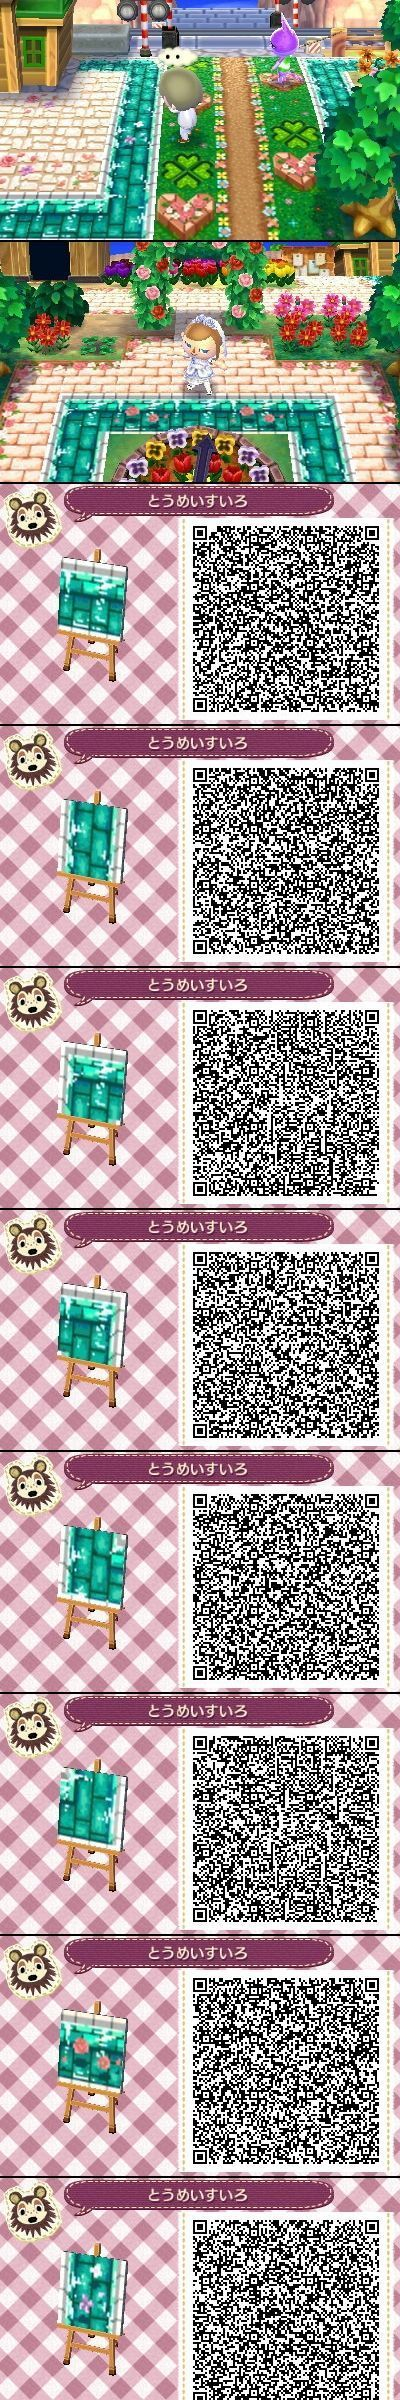 Animal Crossing New Leaf Qr Codes Transparent Water In Animal